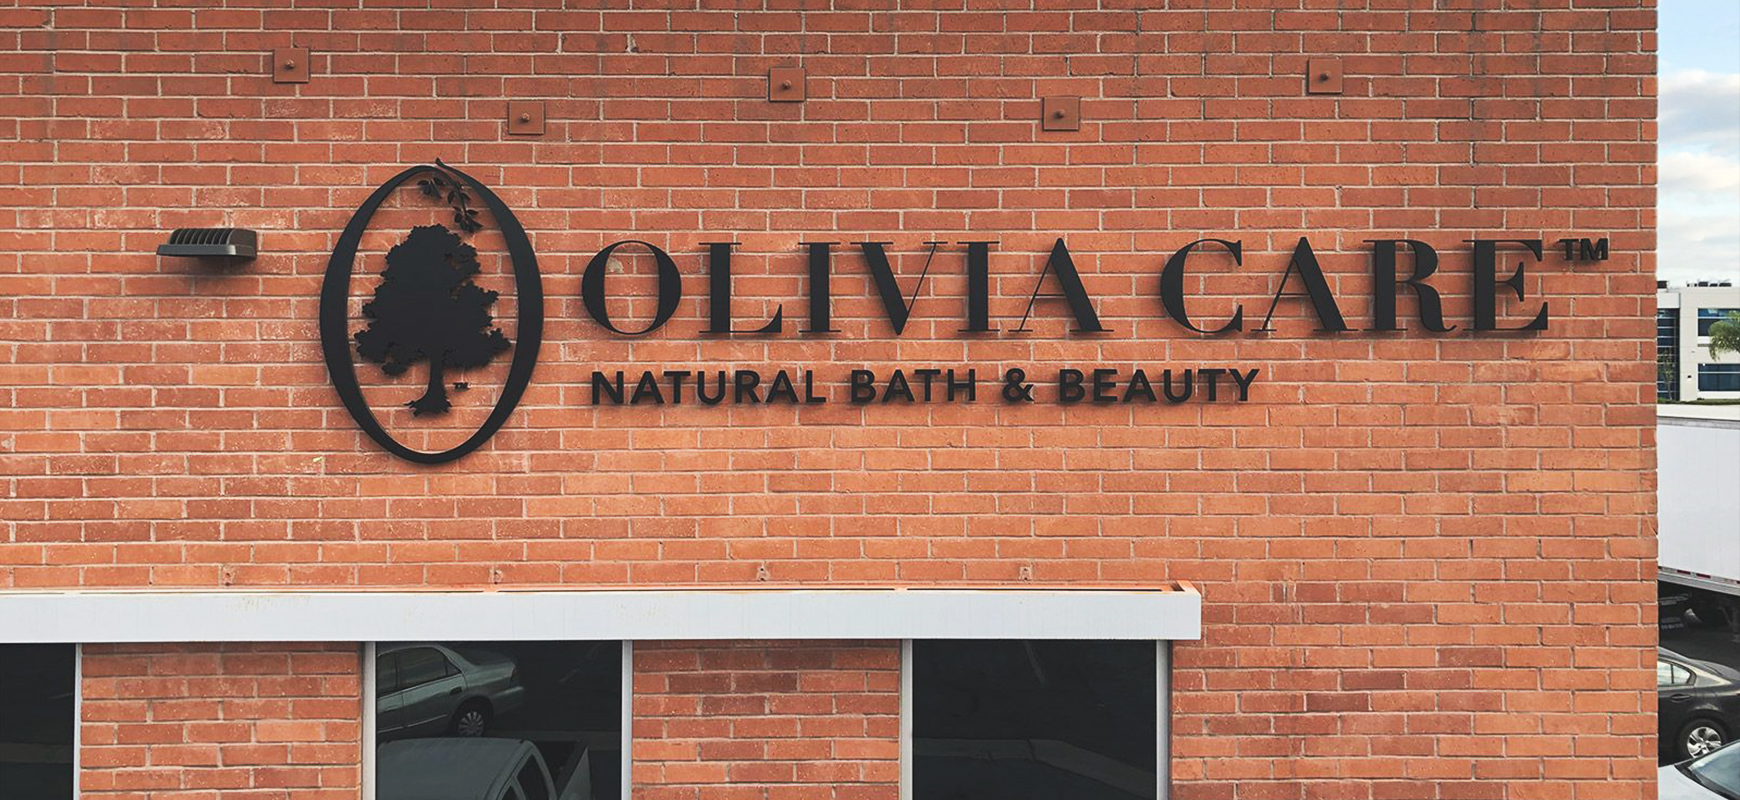 Olivia Care high rise exterior sign in black made of acrylic